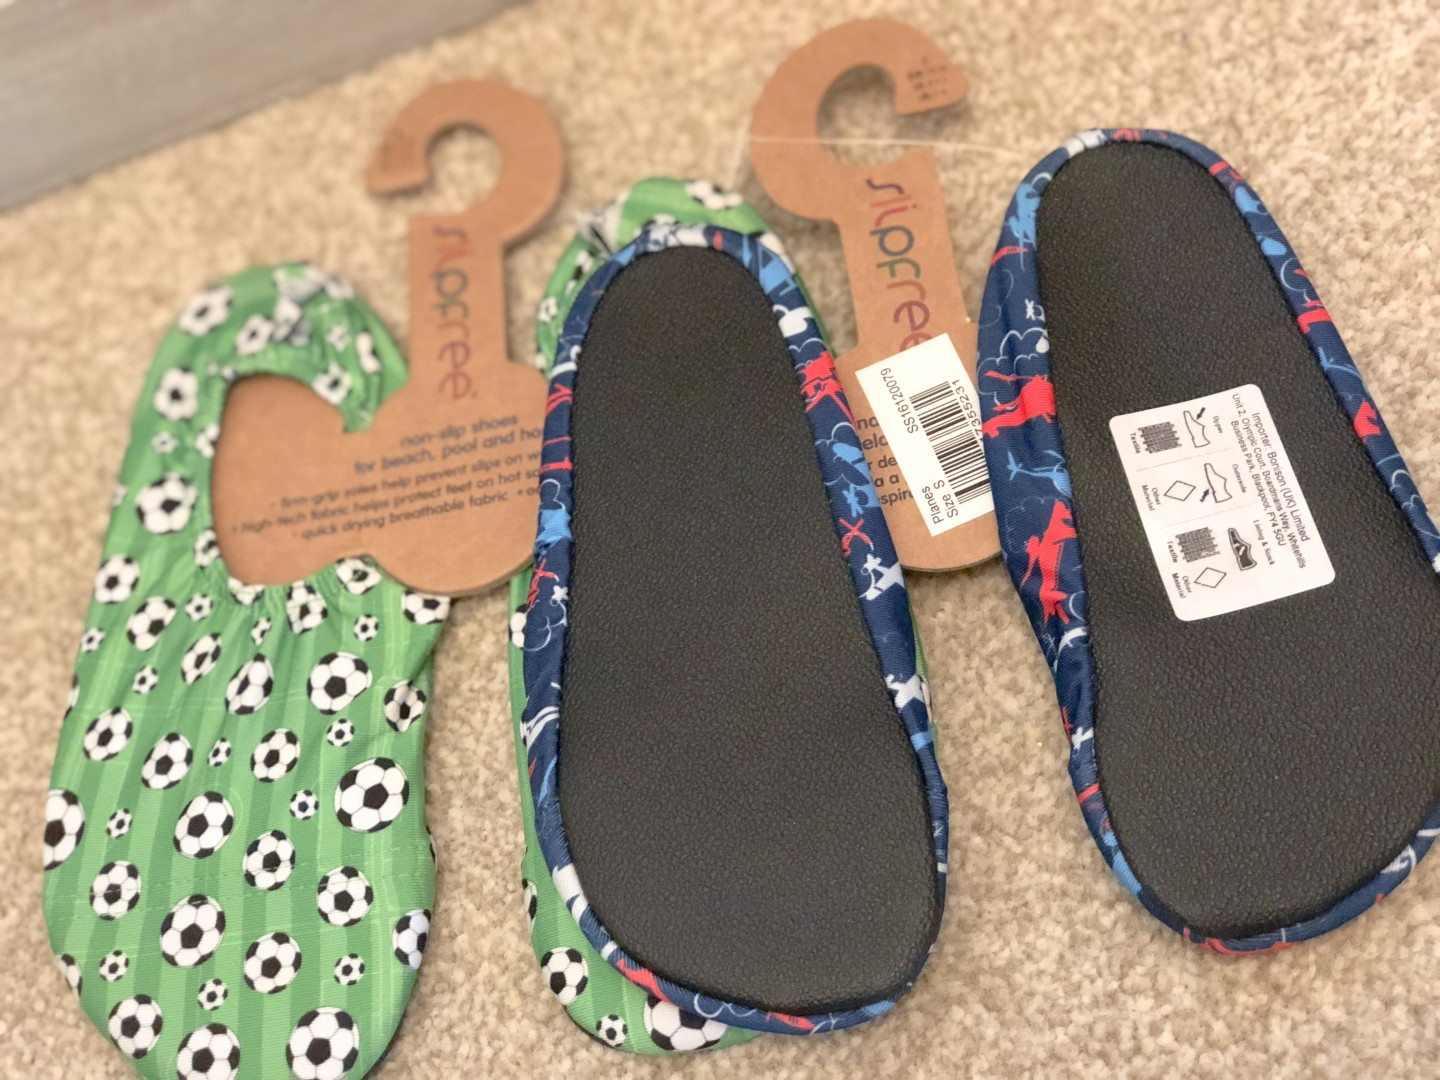 tots and tykes hamper social network solutions explore new brands slip free shoes soles Slipfree UK review